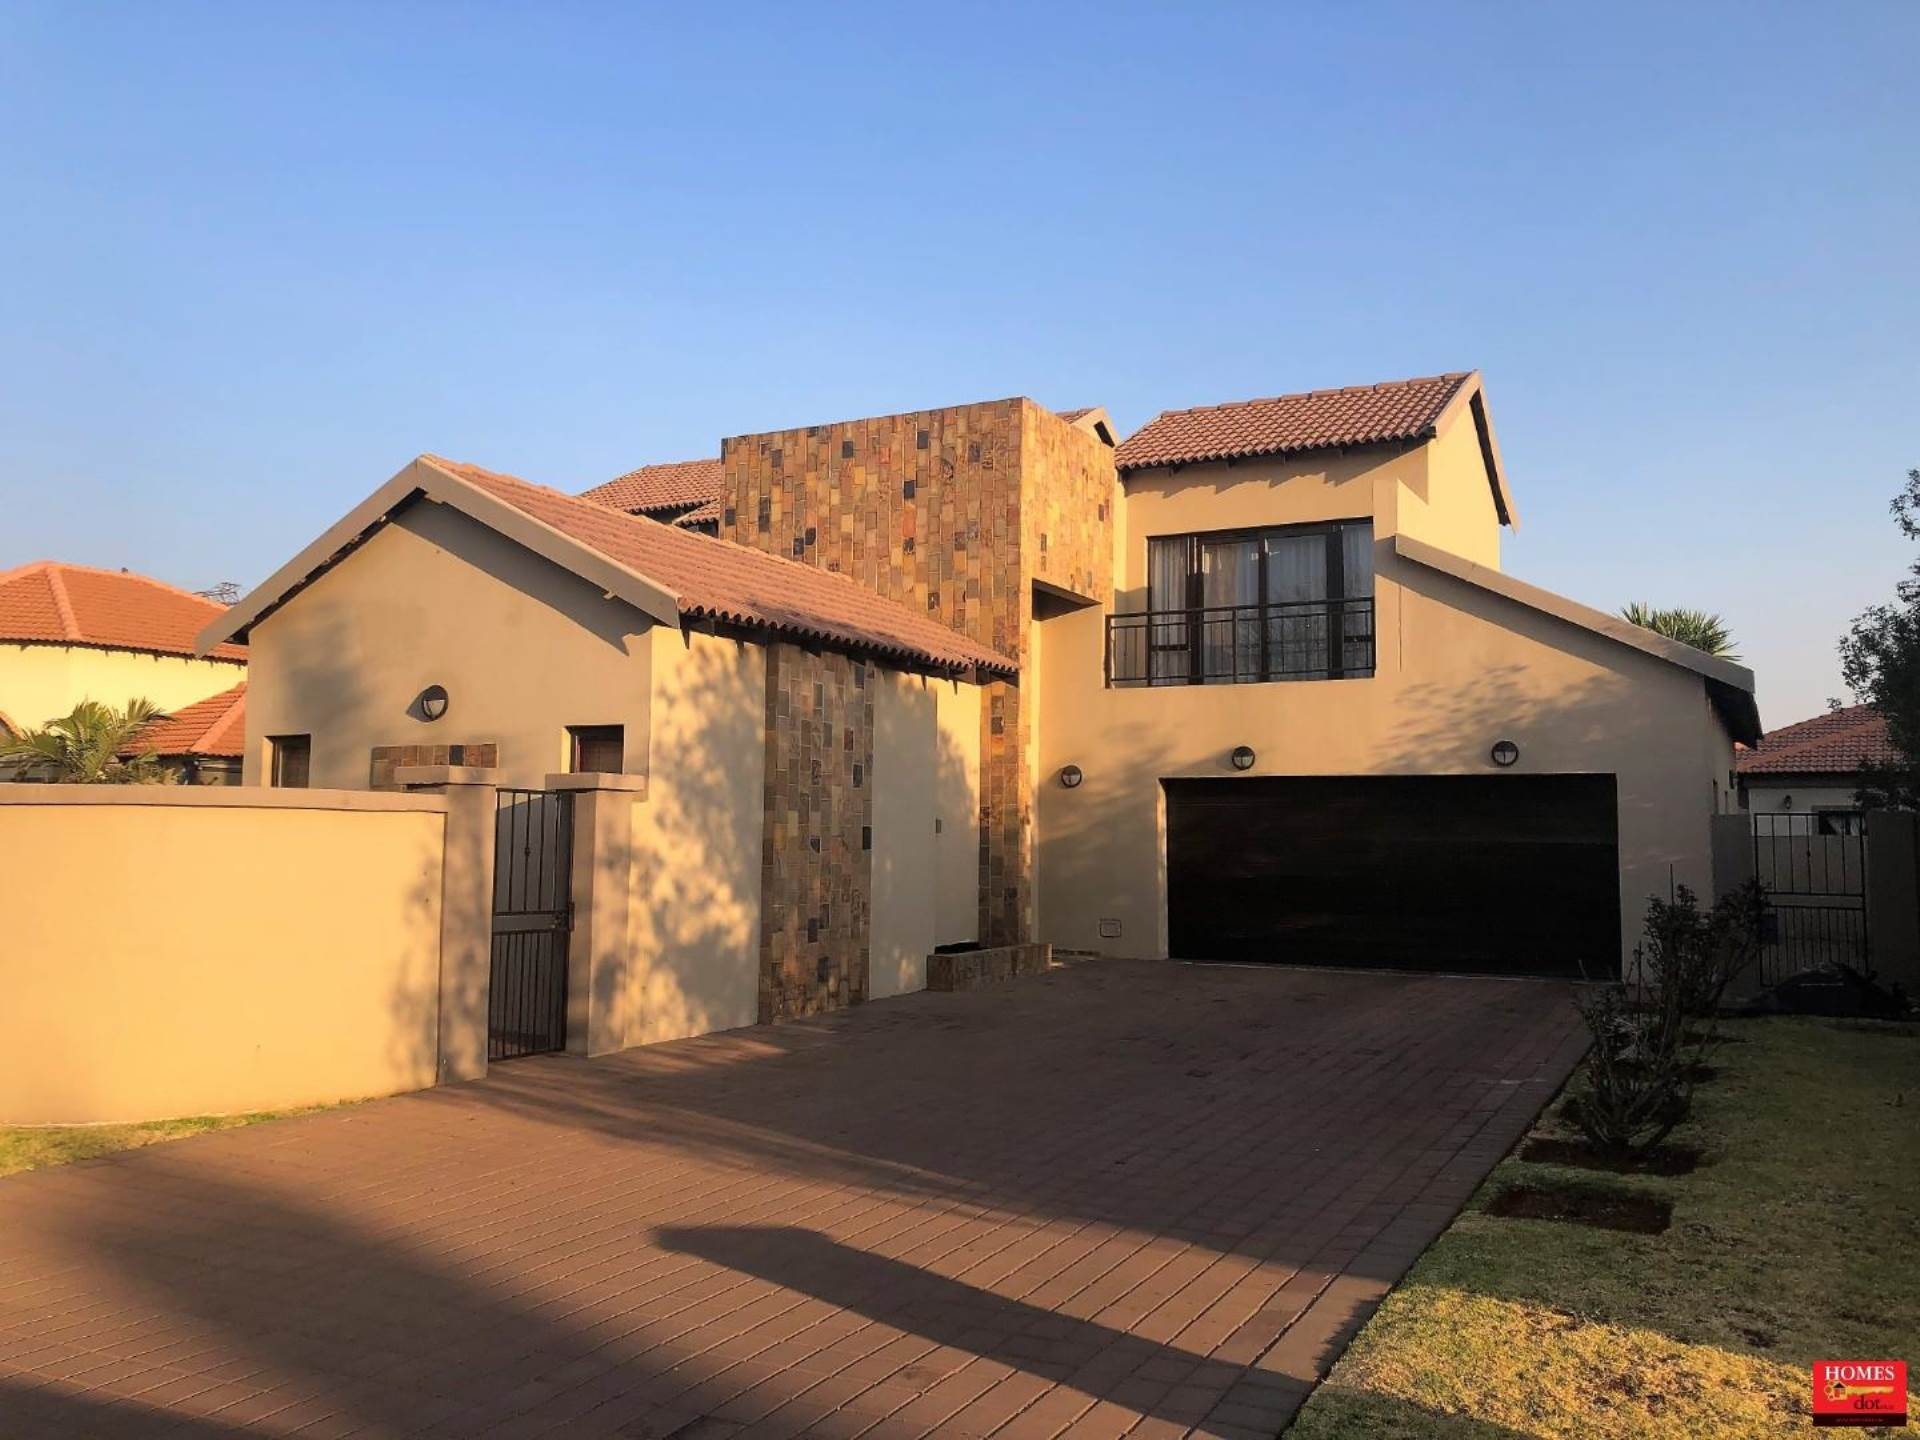 House For Sale In Midfield Estate, Centurion, Gauteng for R 3,150,000